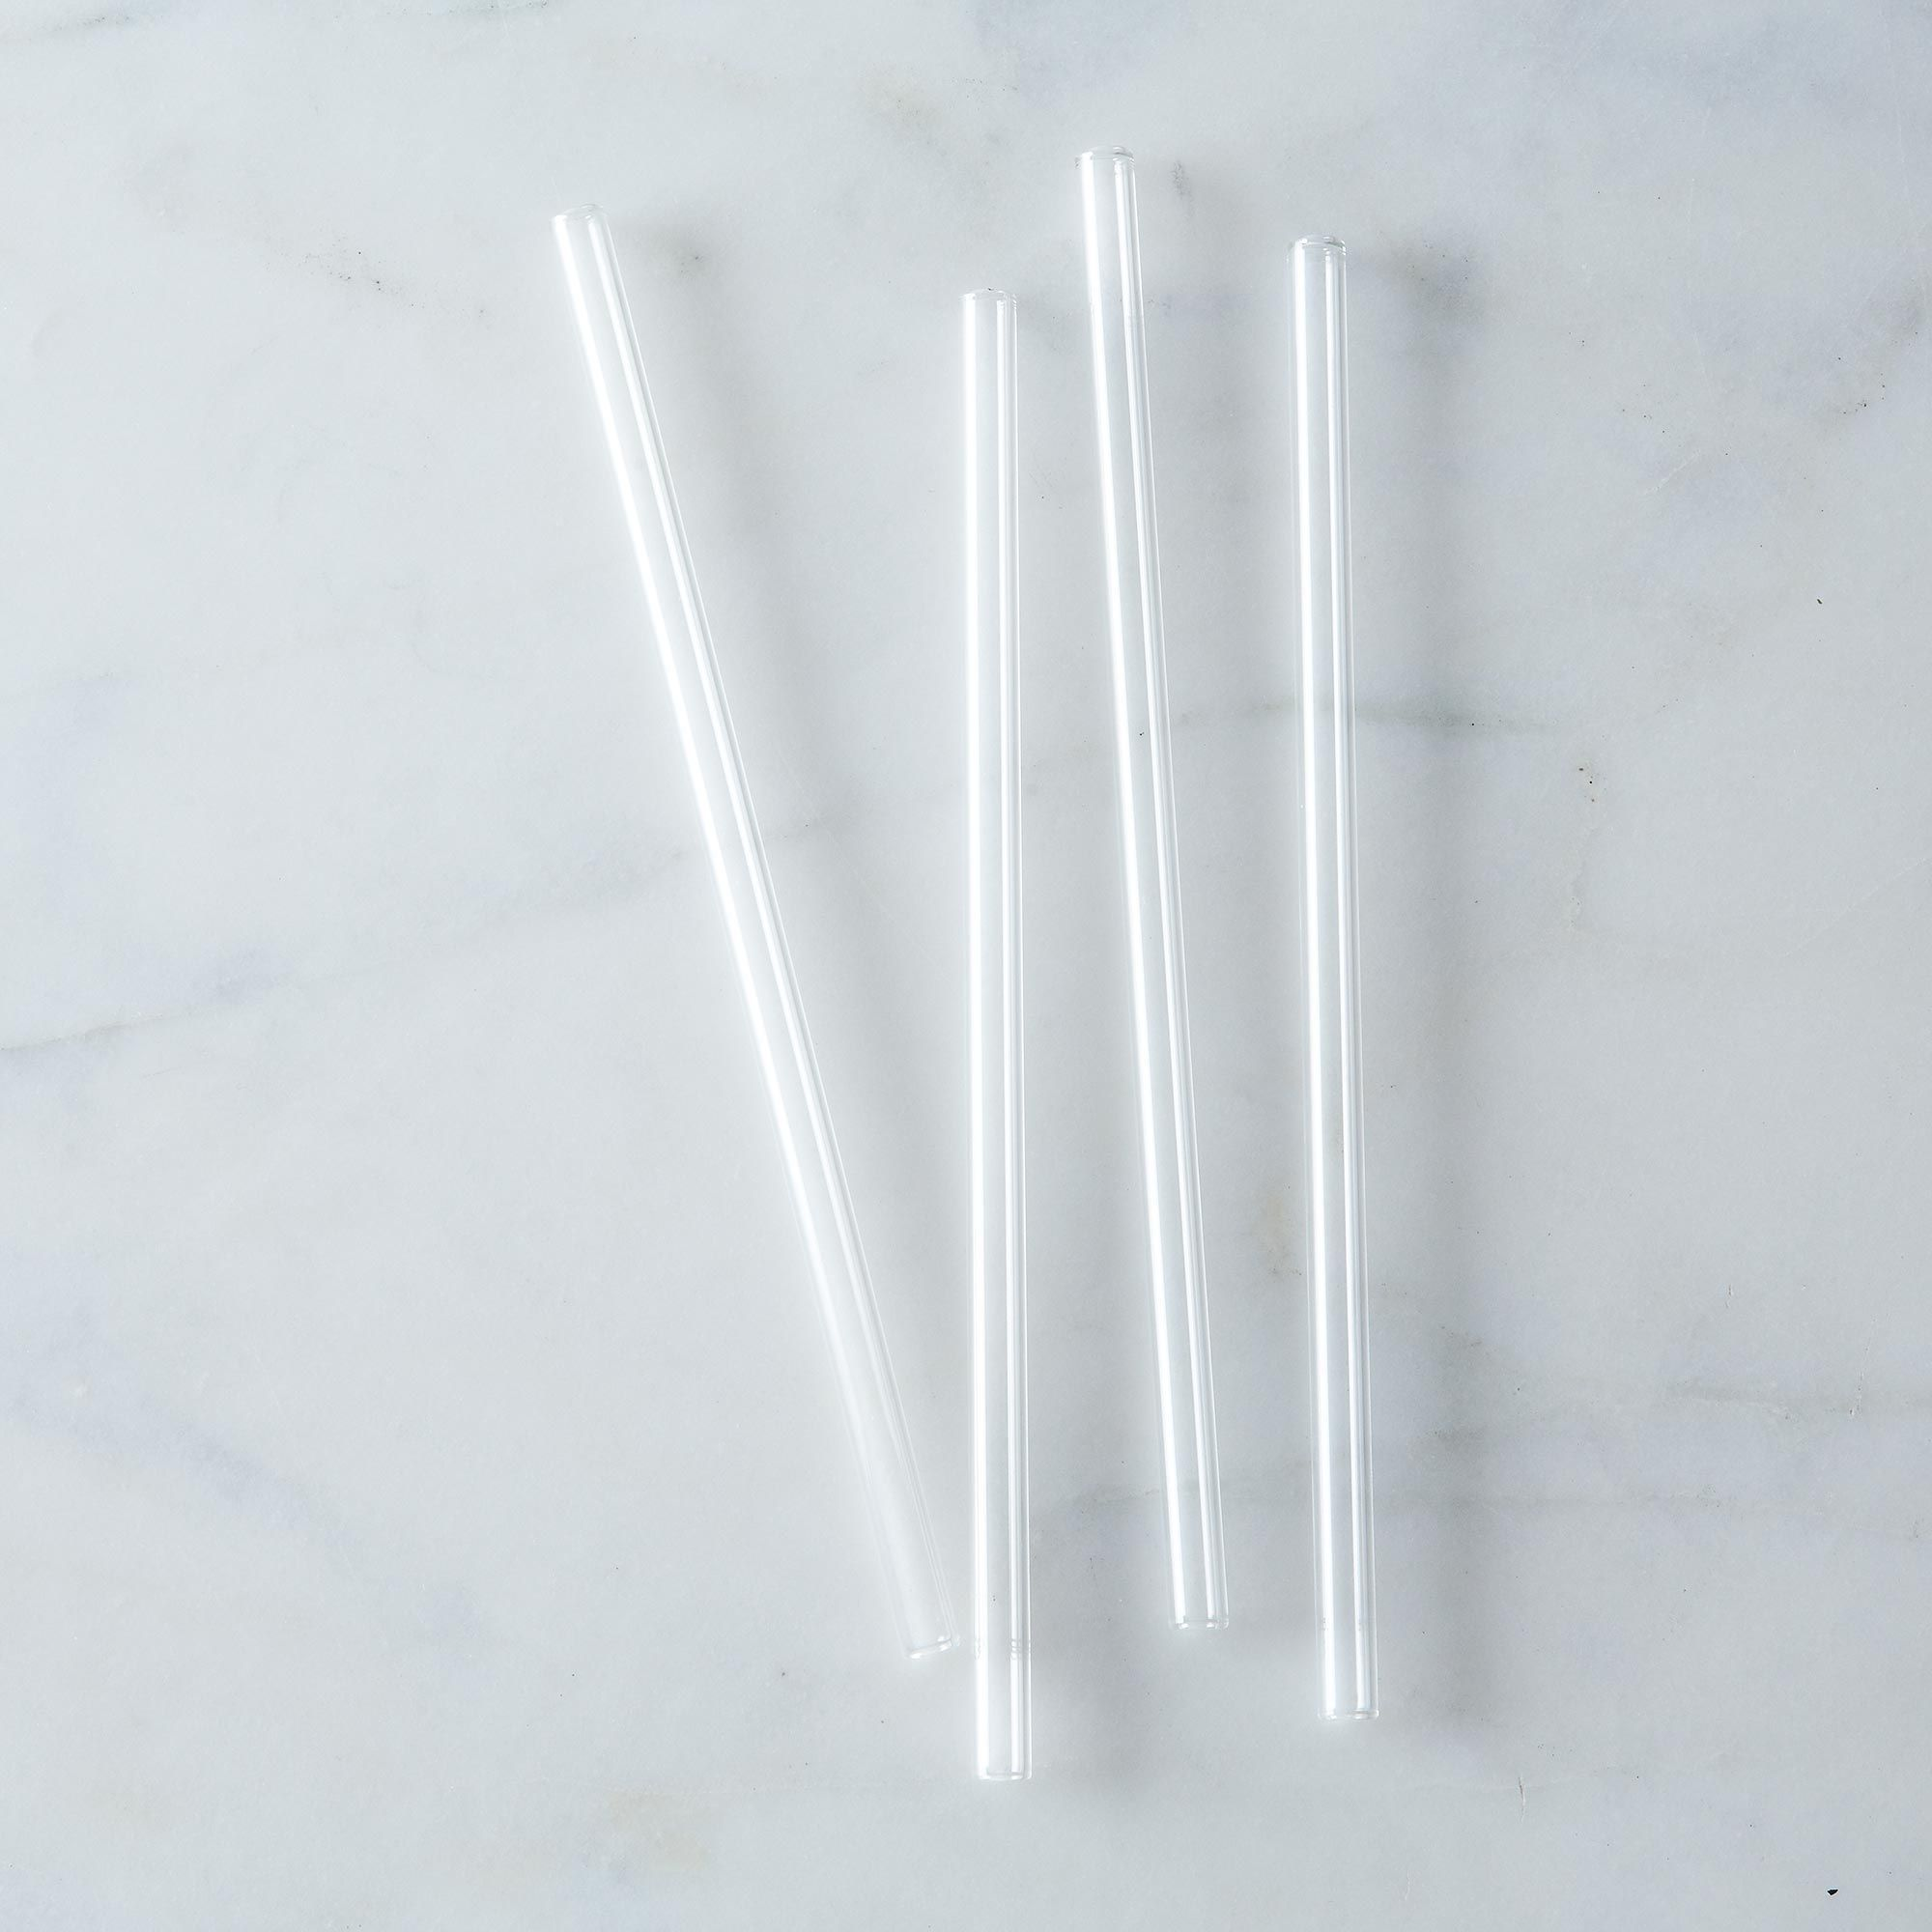 52e8536d 1606 411c 89b8 306f2ee67fbf  2013 0130 juiceglass glass straws straight 004